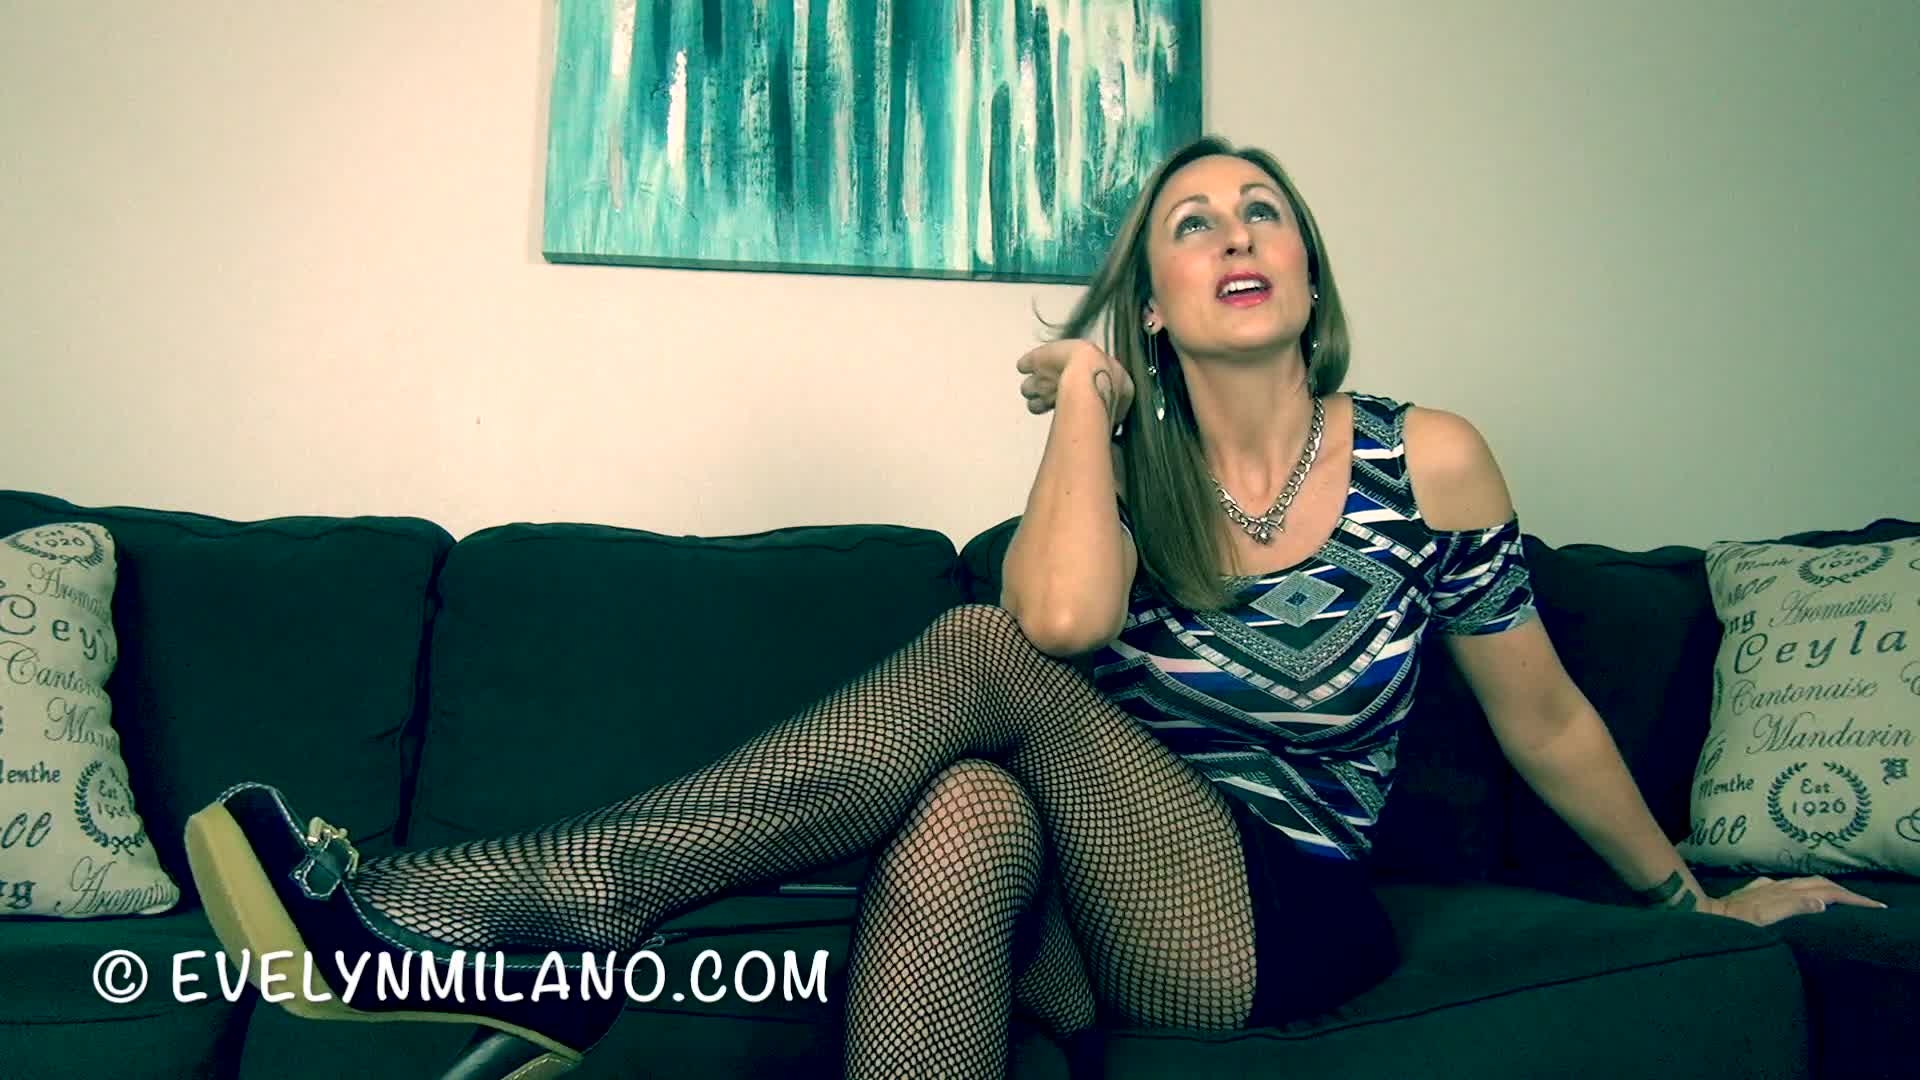 Evelyn Milano's vid